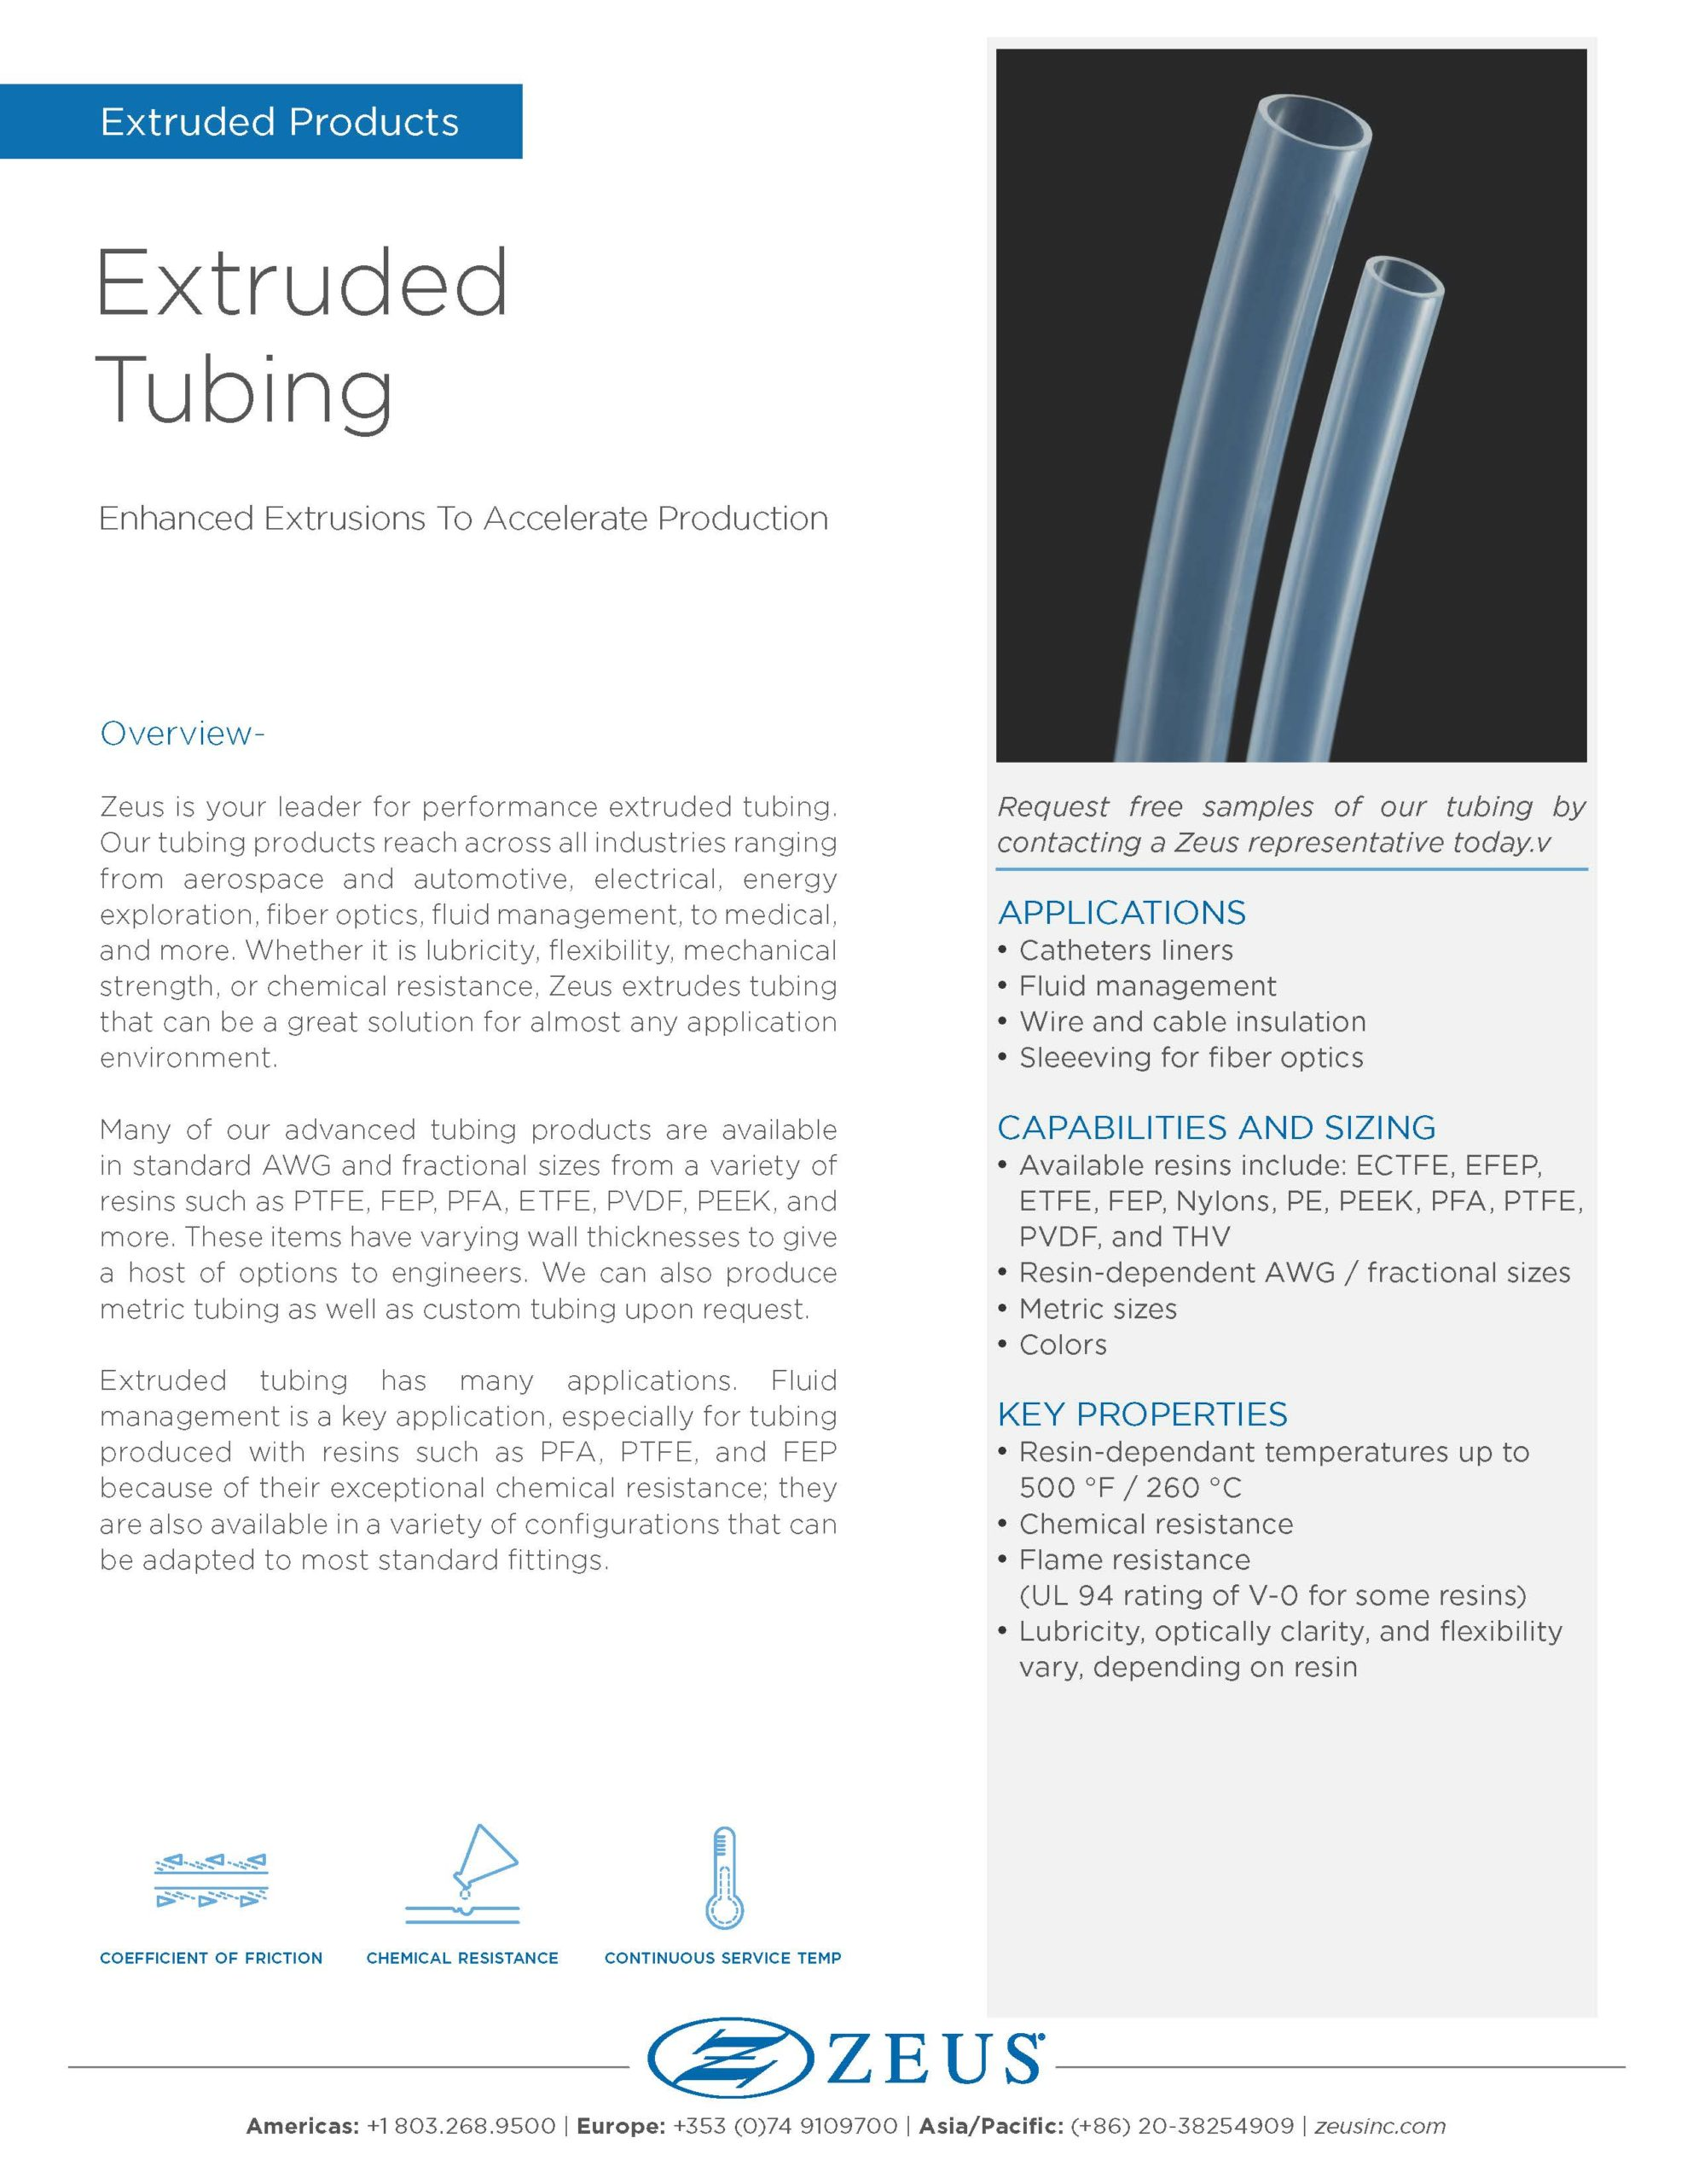 Extruded Tubing